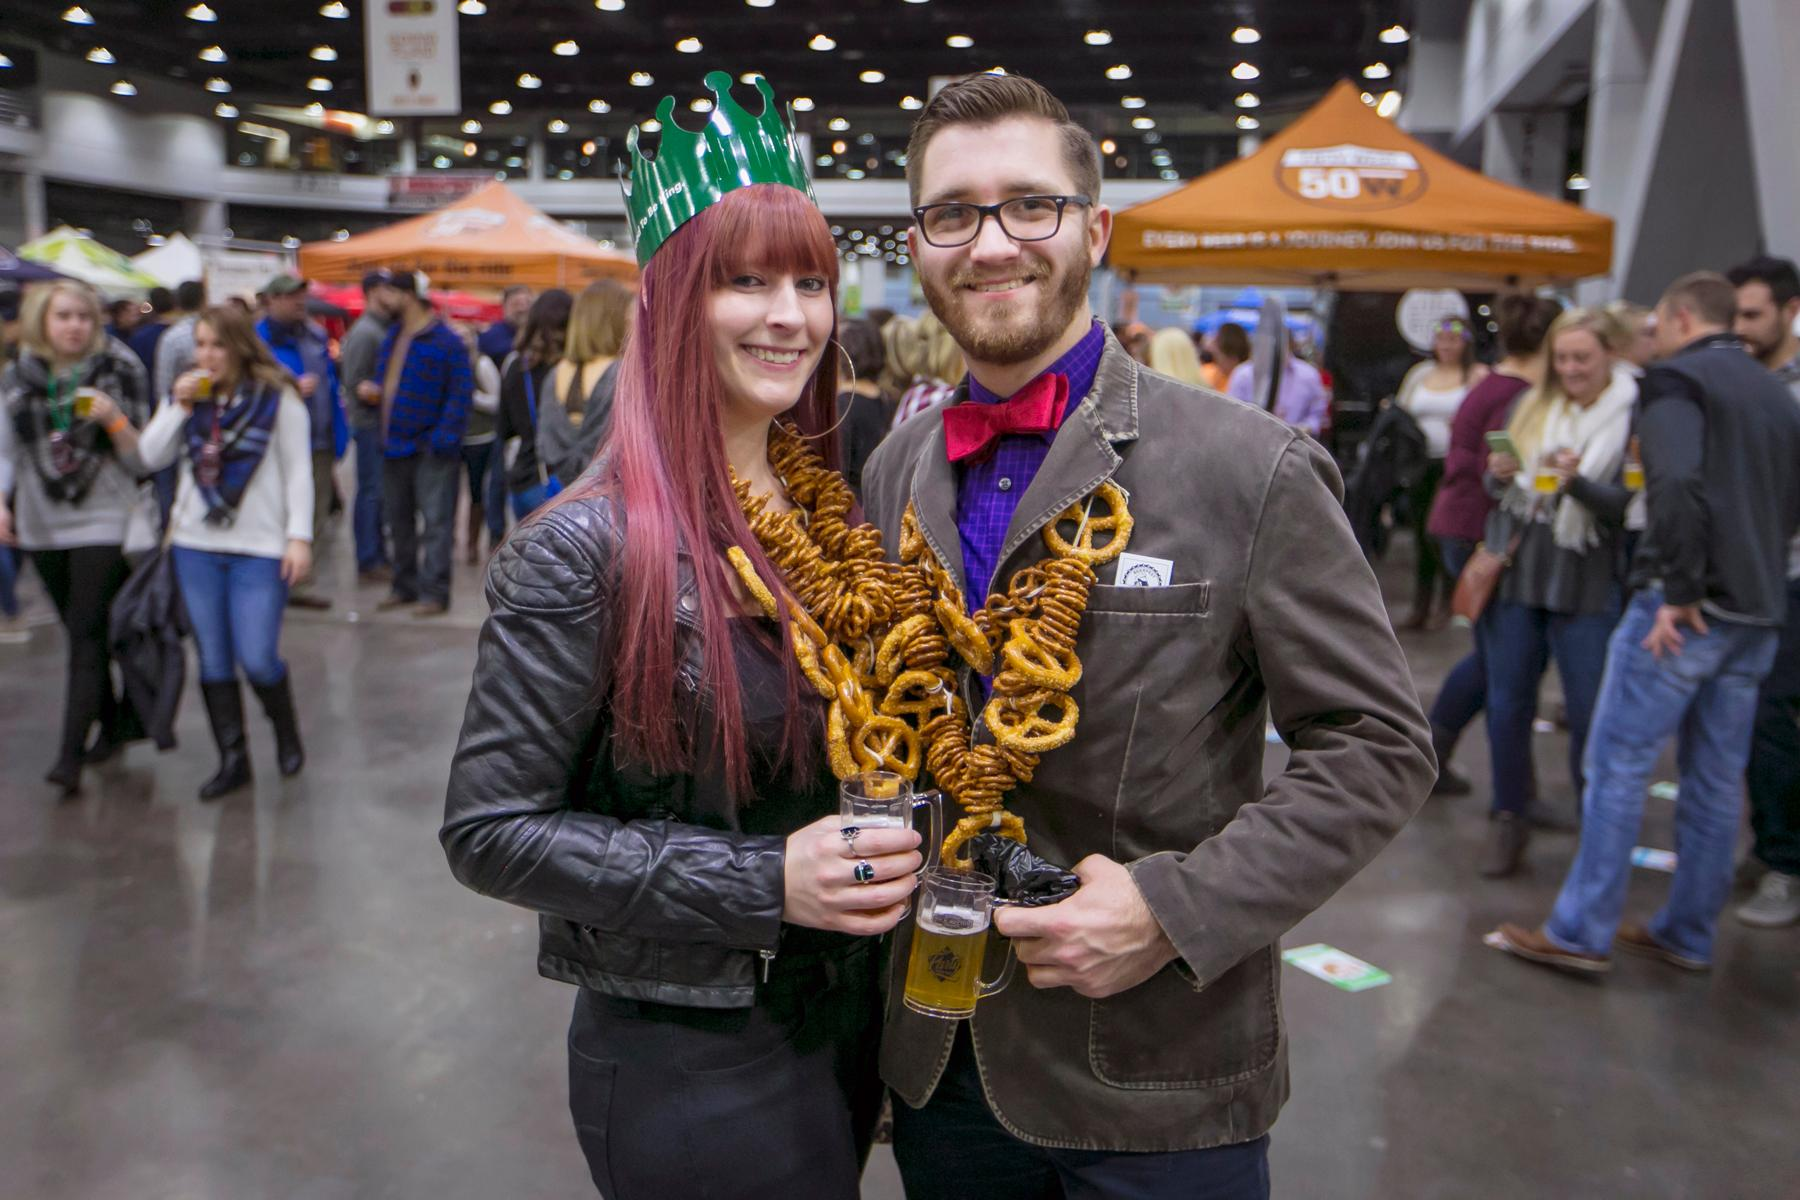 Pictured: Jamie Dewar and Caleb Richardson / Event: Cincy Winter Beerfest (Feb. 2-3, 2018) / Image: Mike Bresnen Photography // Published: 3.3.18